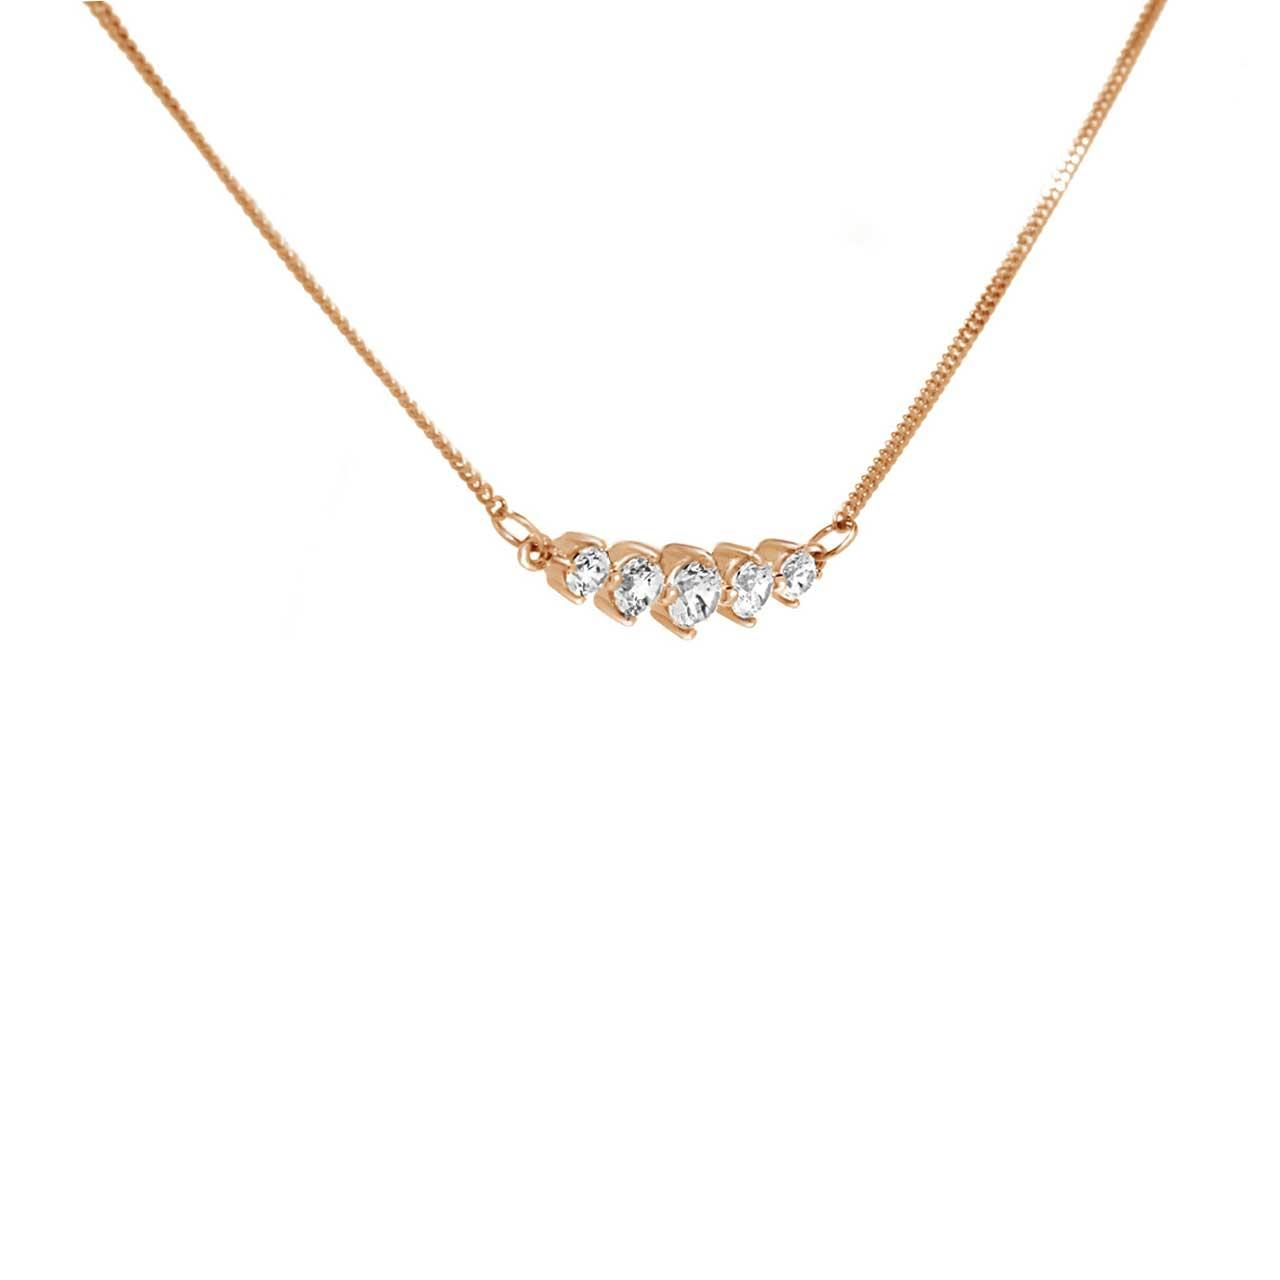 'Five Symbols of Joy' Necklace with CZ. View 2